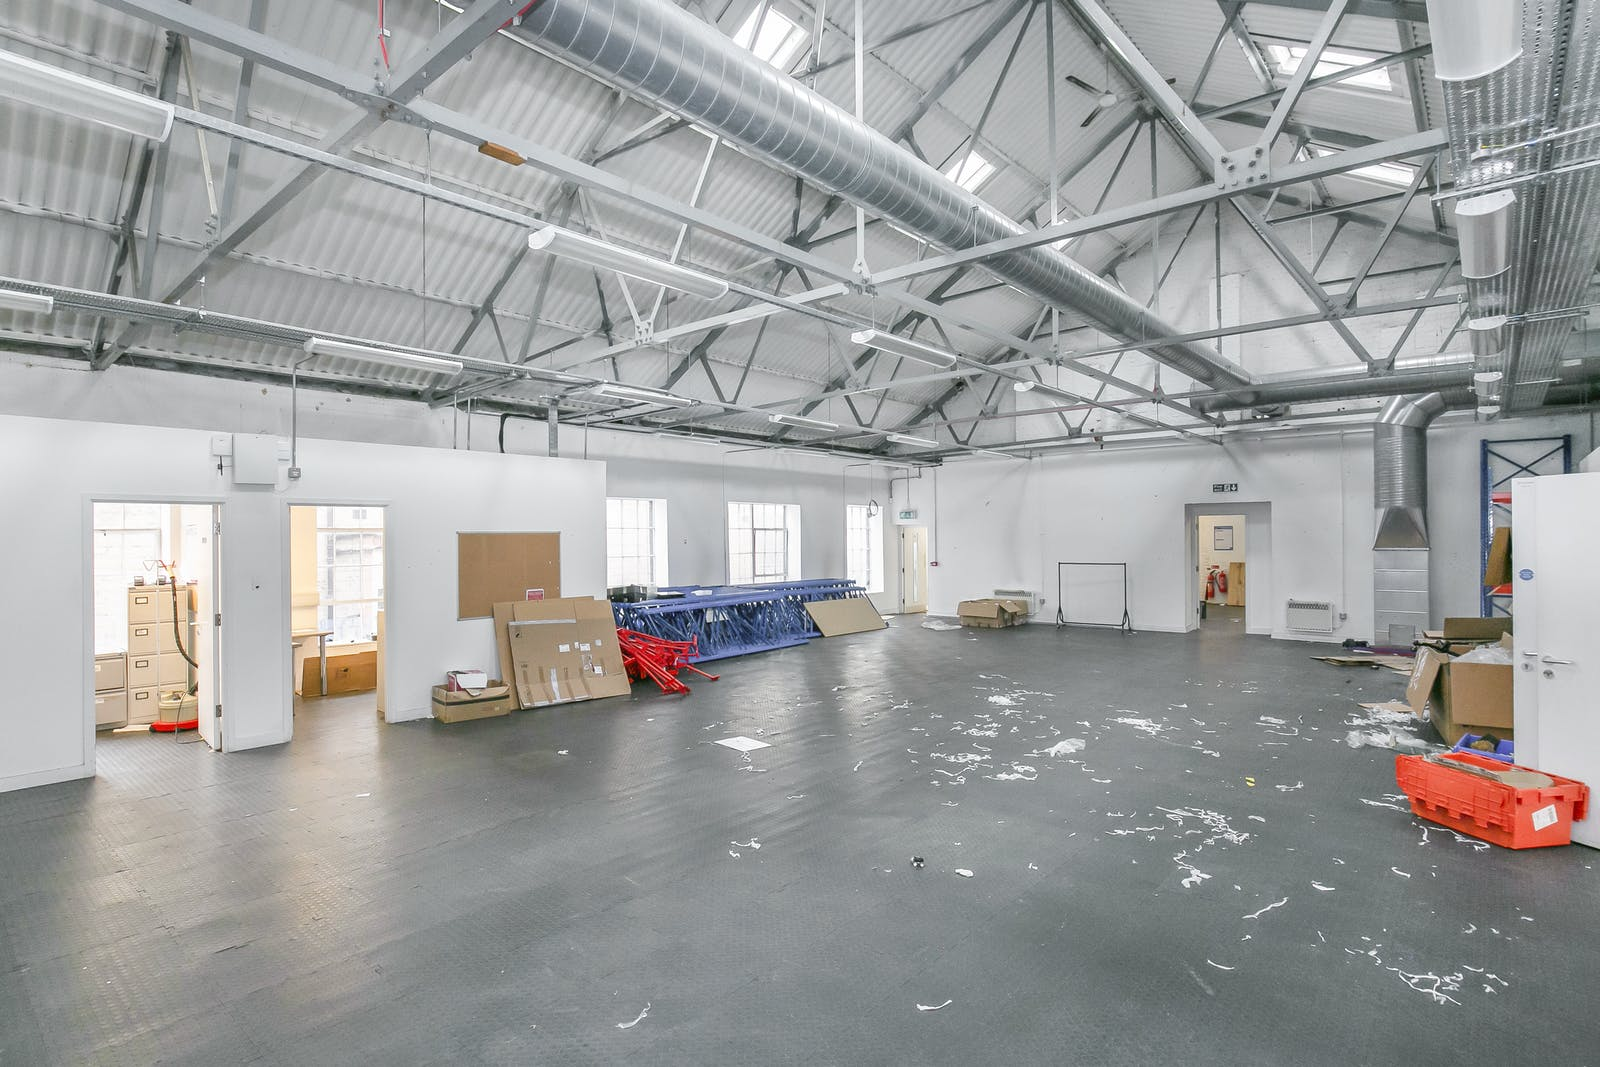 7-9 Chatham Place, London, Office / Industrial / Trade Counter / Retail / Showroom / Leisure / D2 (Assembly and Leisure) To Let - S25C8003.jpg